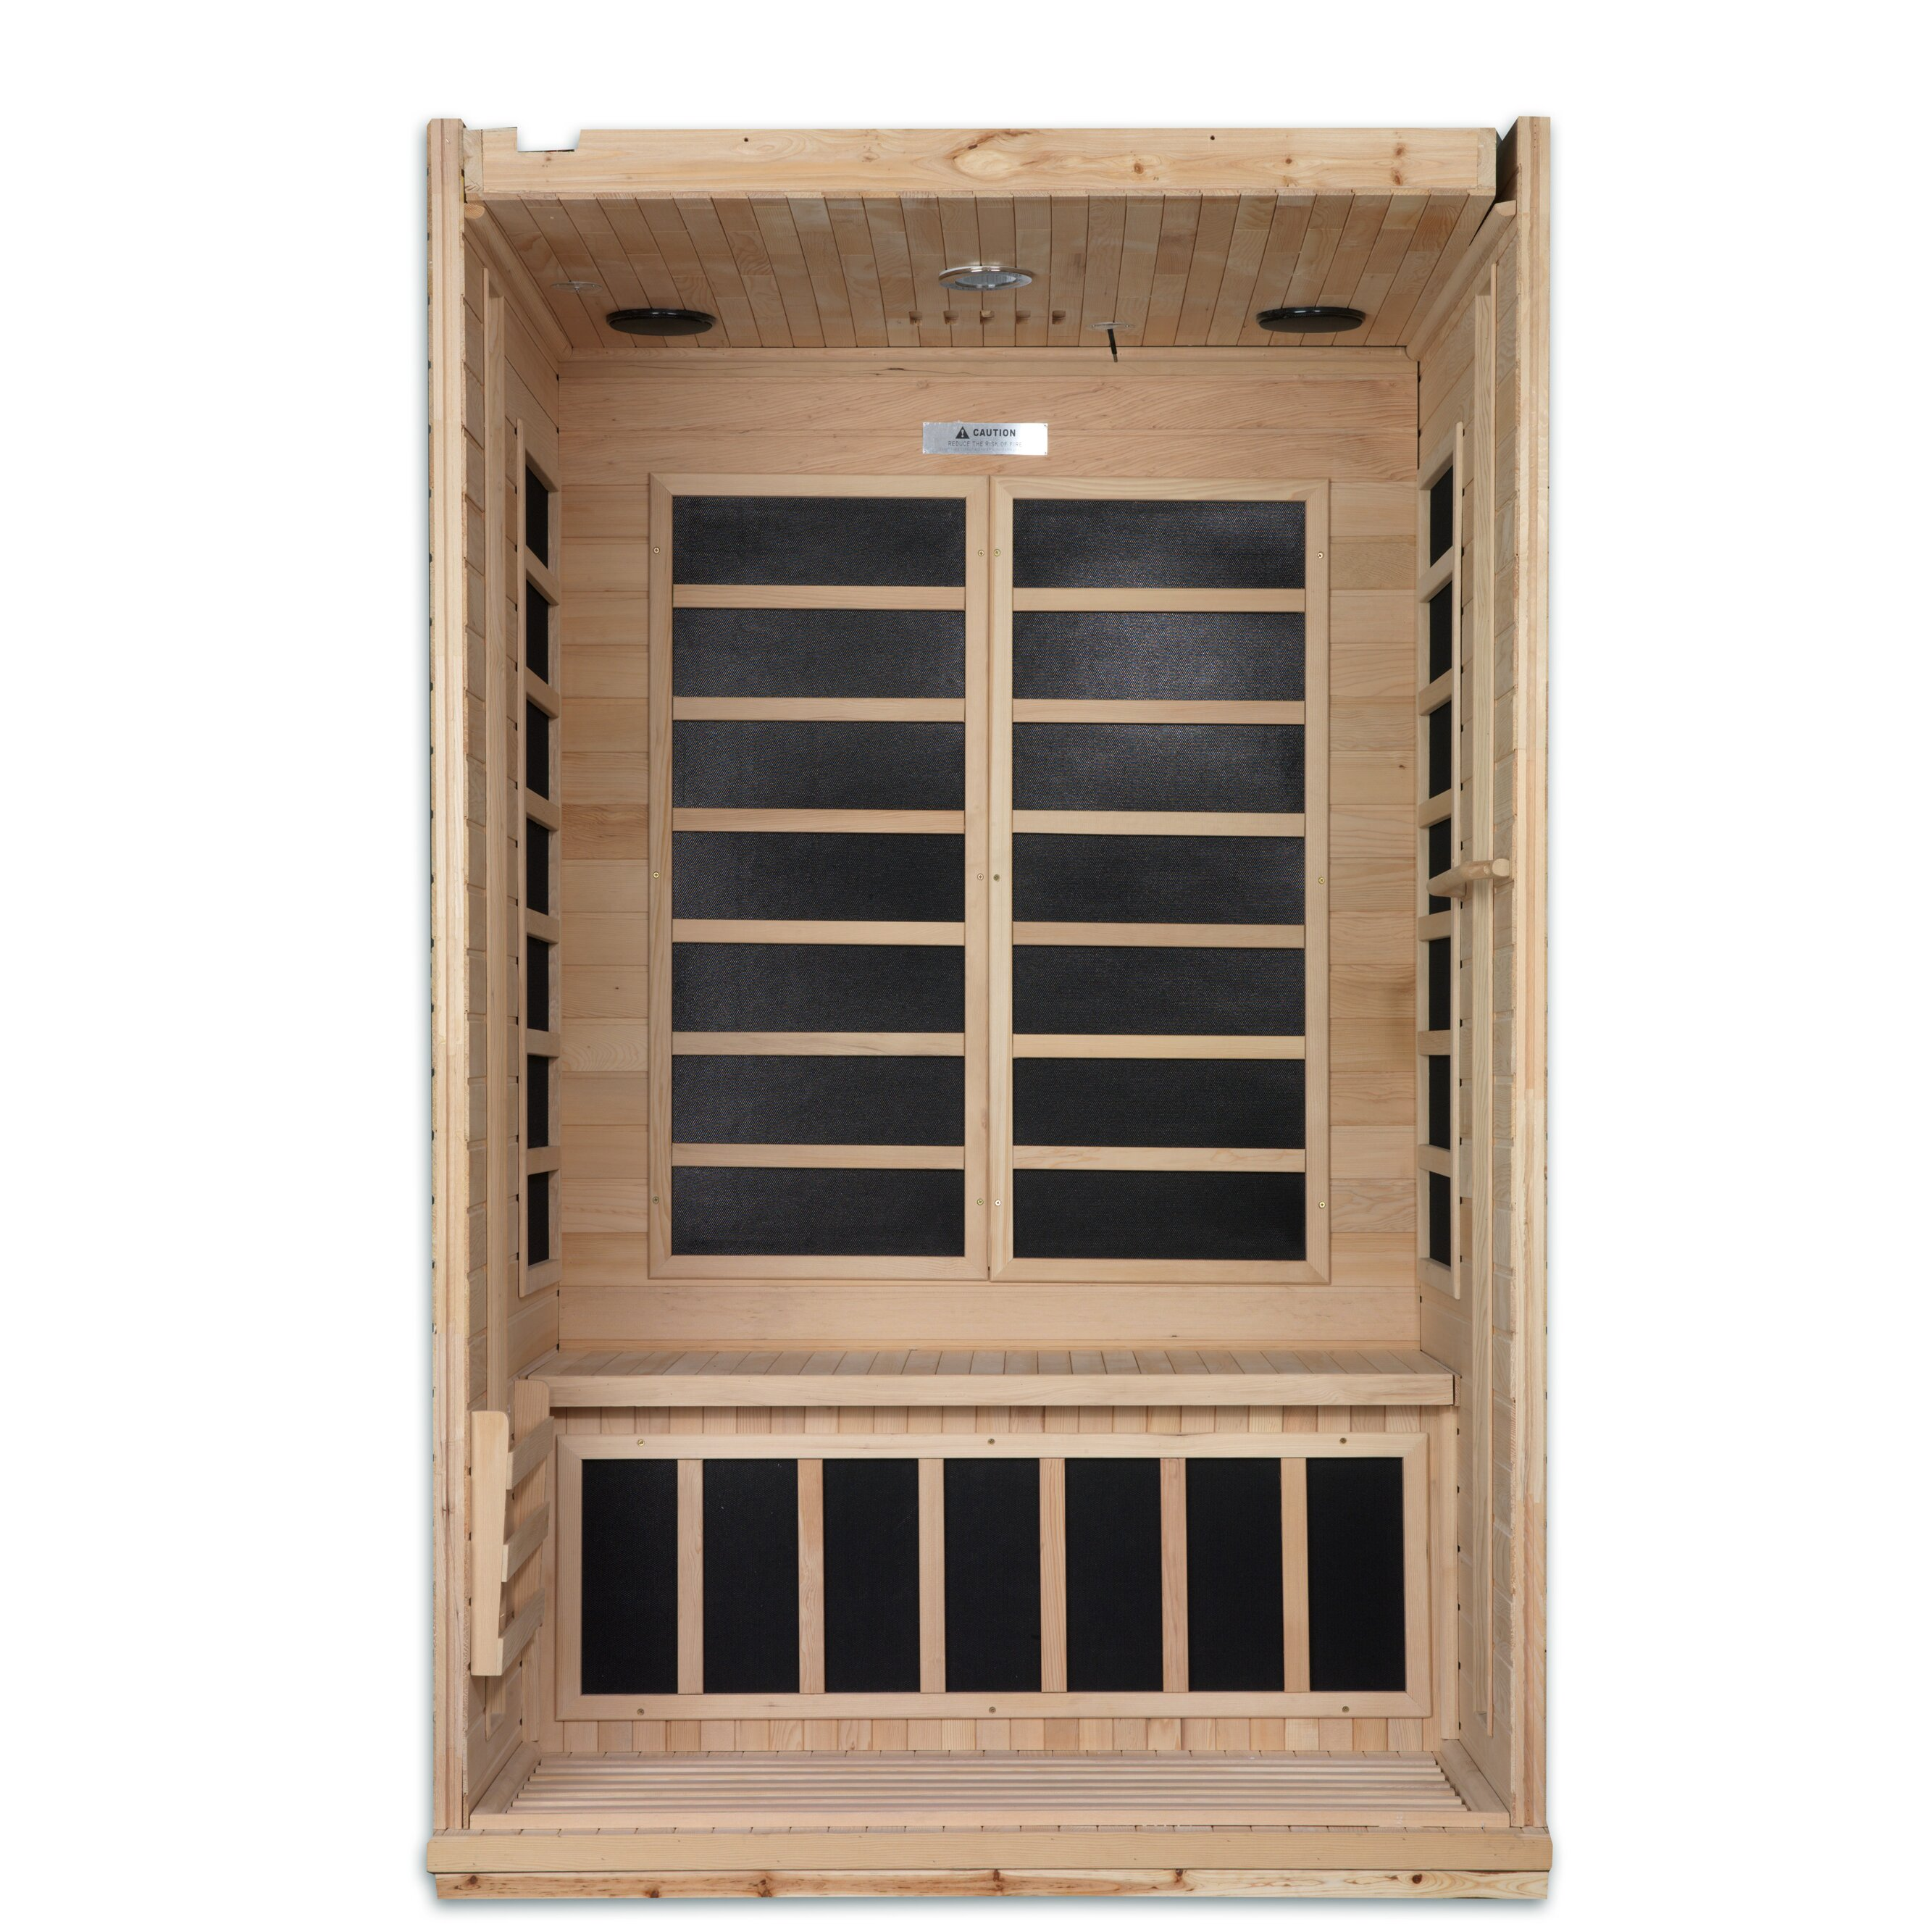 heilsa two person infrared sauna review